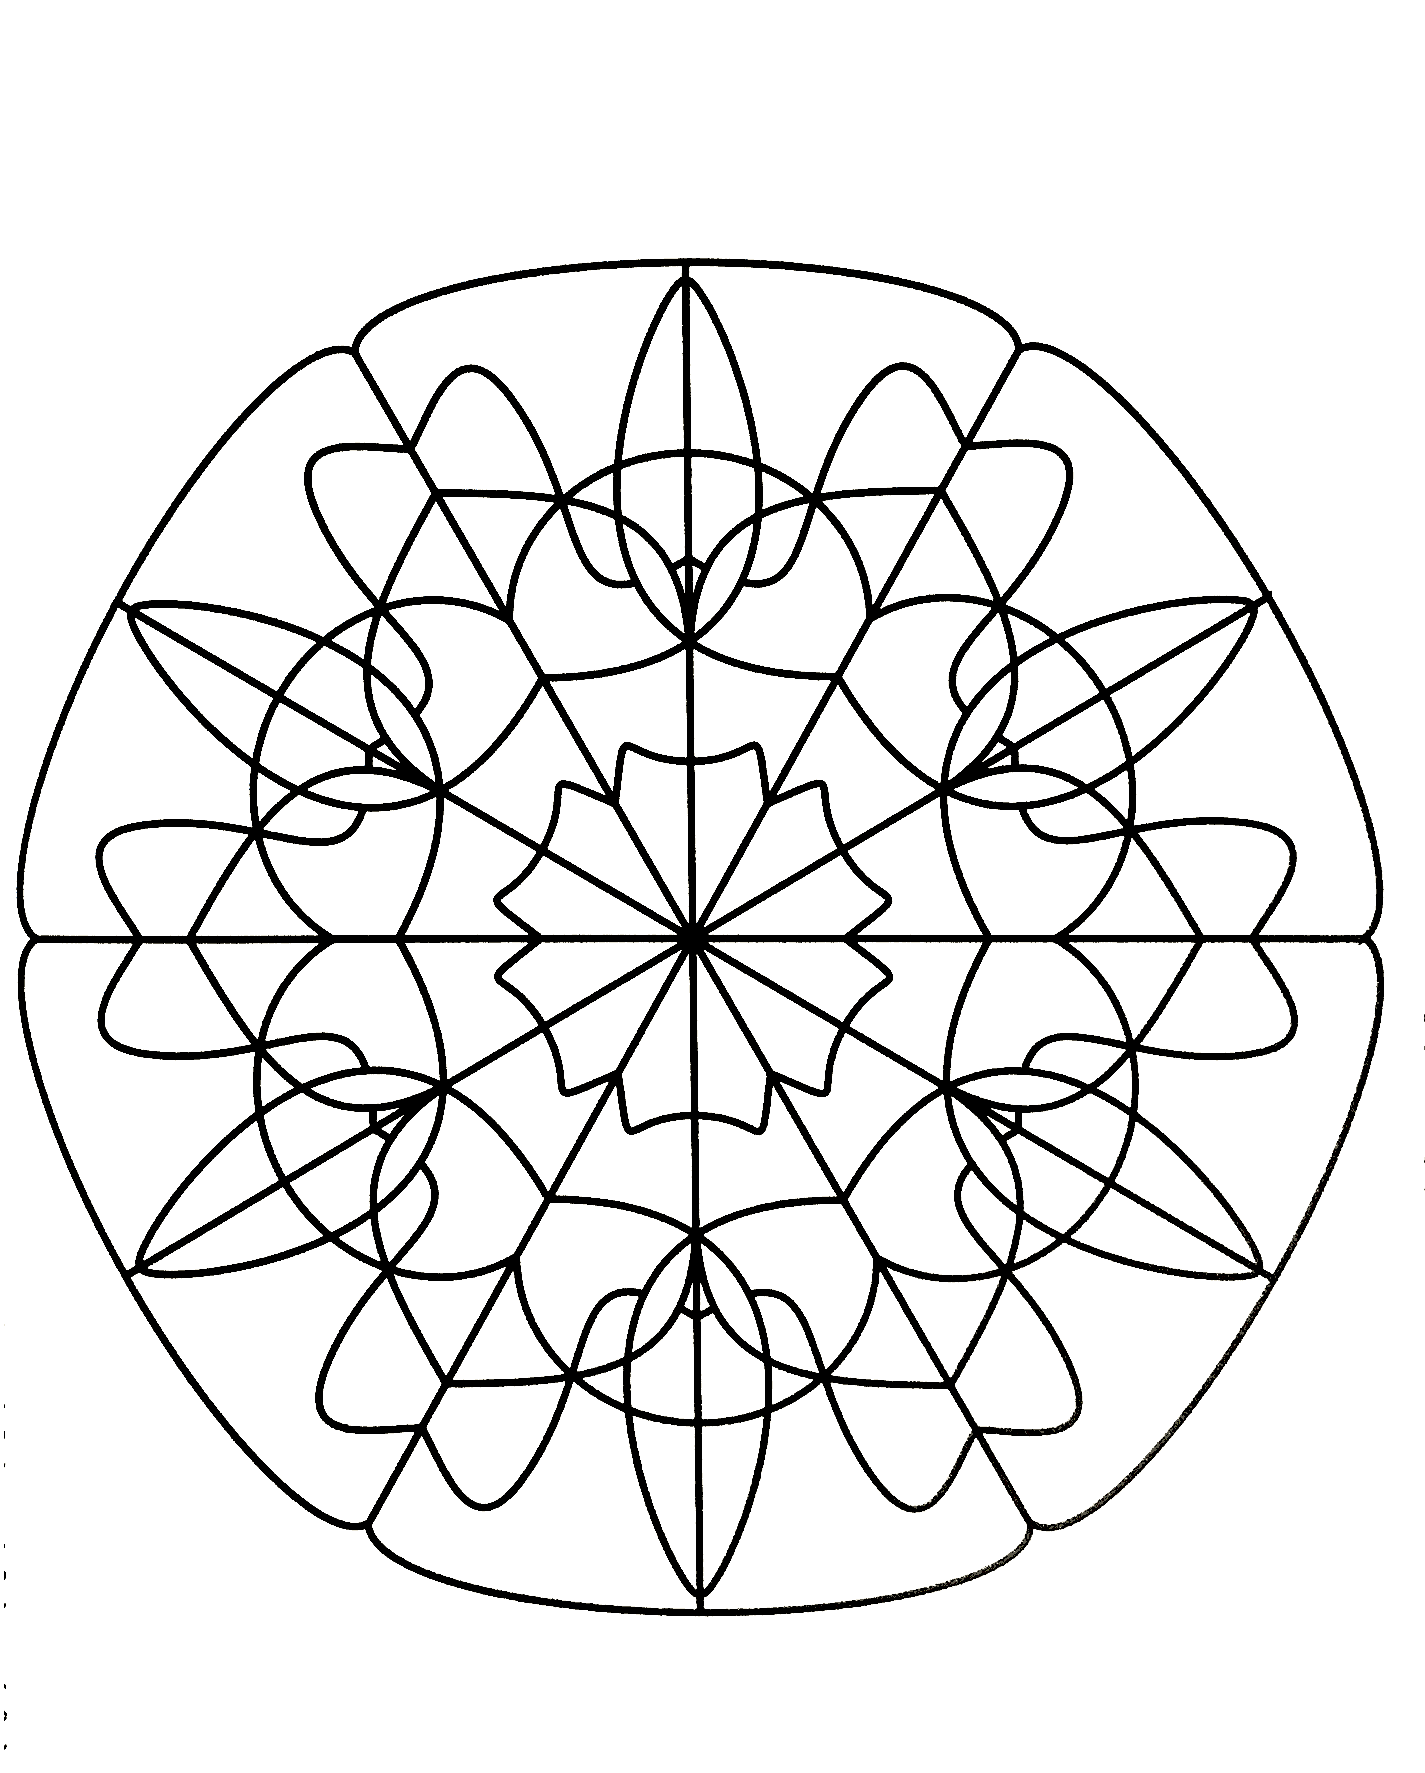 When coloring can really relax you ... This is the case with this Mandala coloring page of high quality.